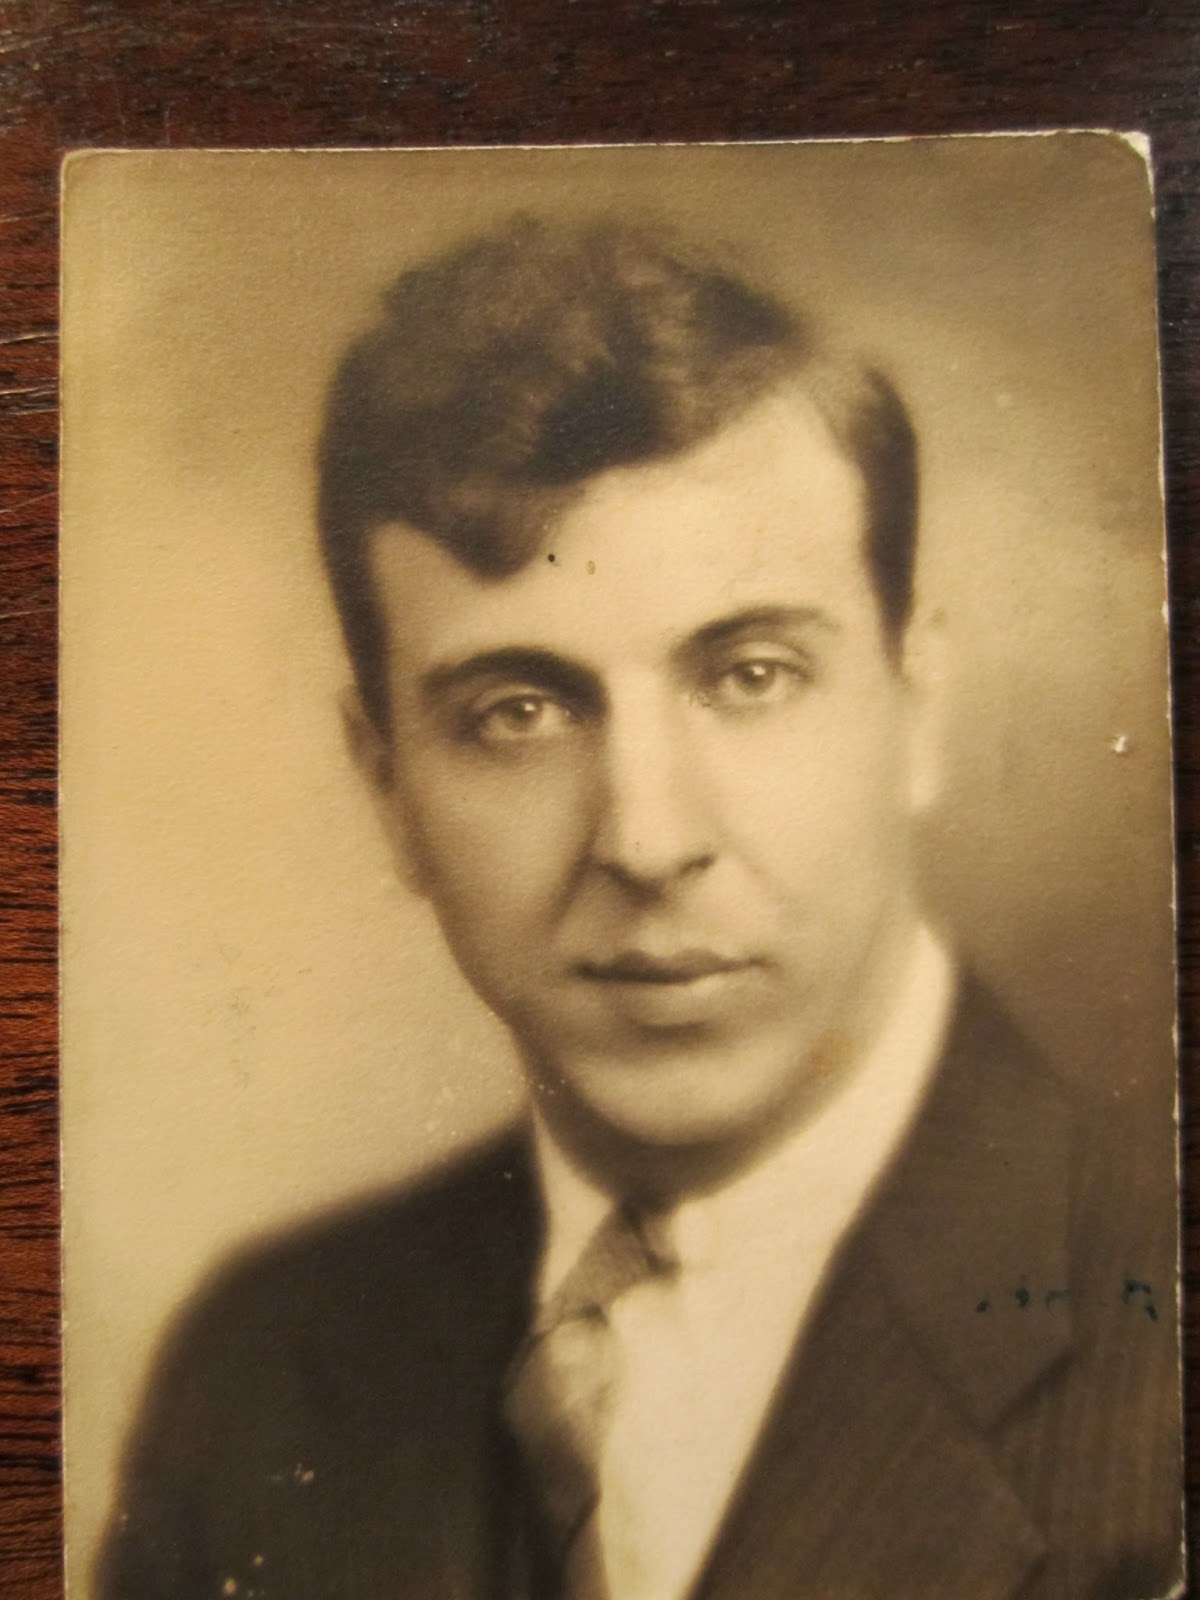 Climbing My Family Tree: Clarence W. Snyder at 17 (1910-1982)